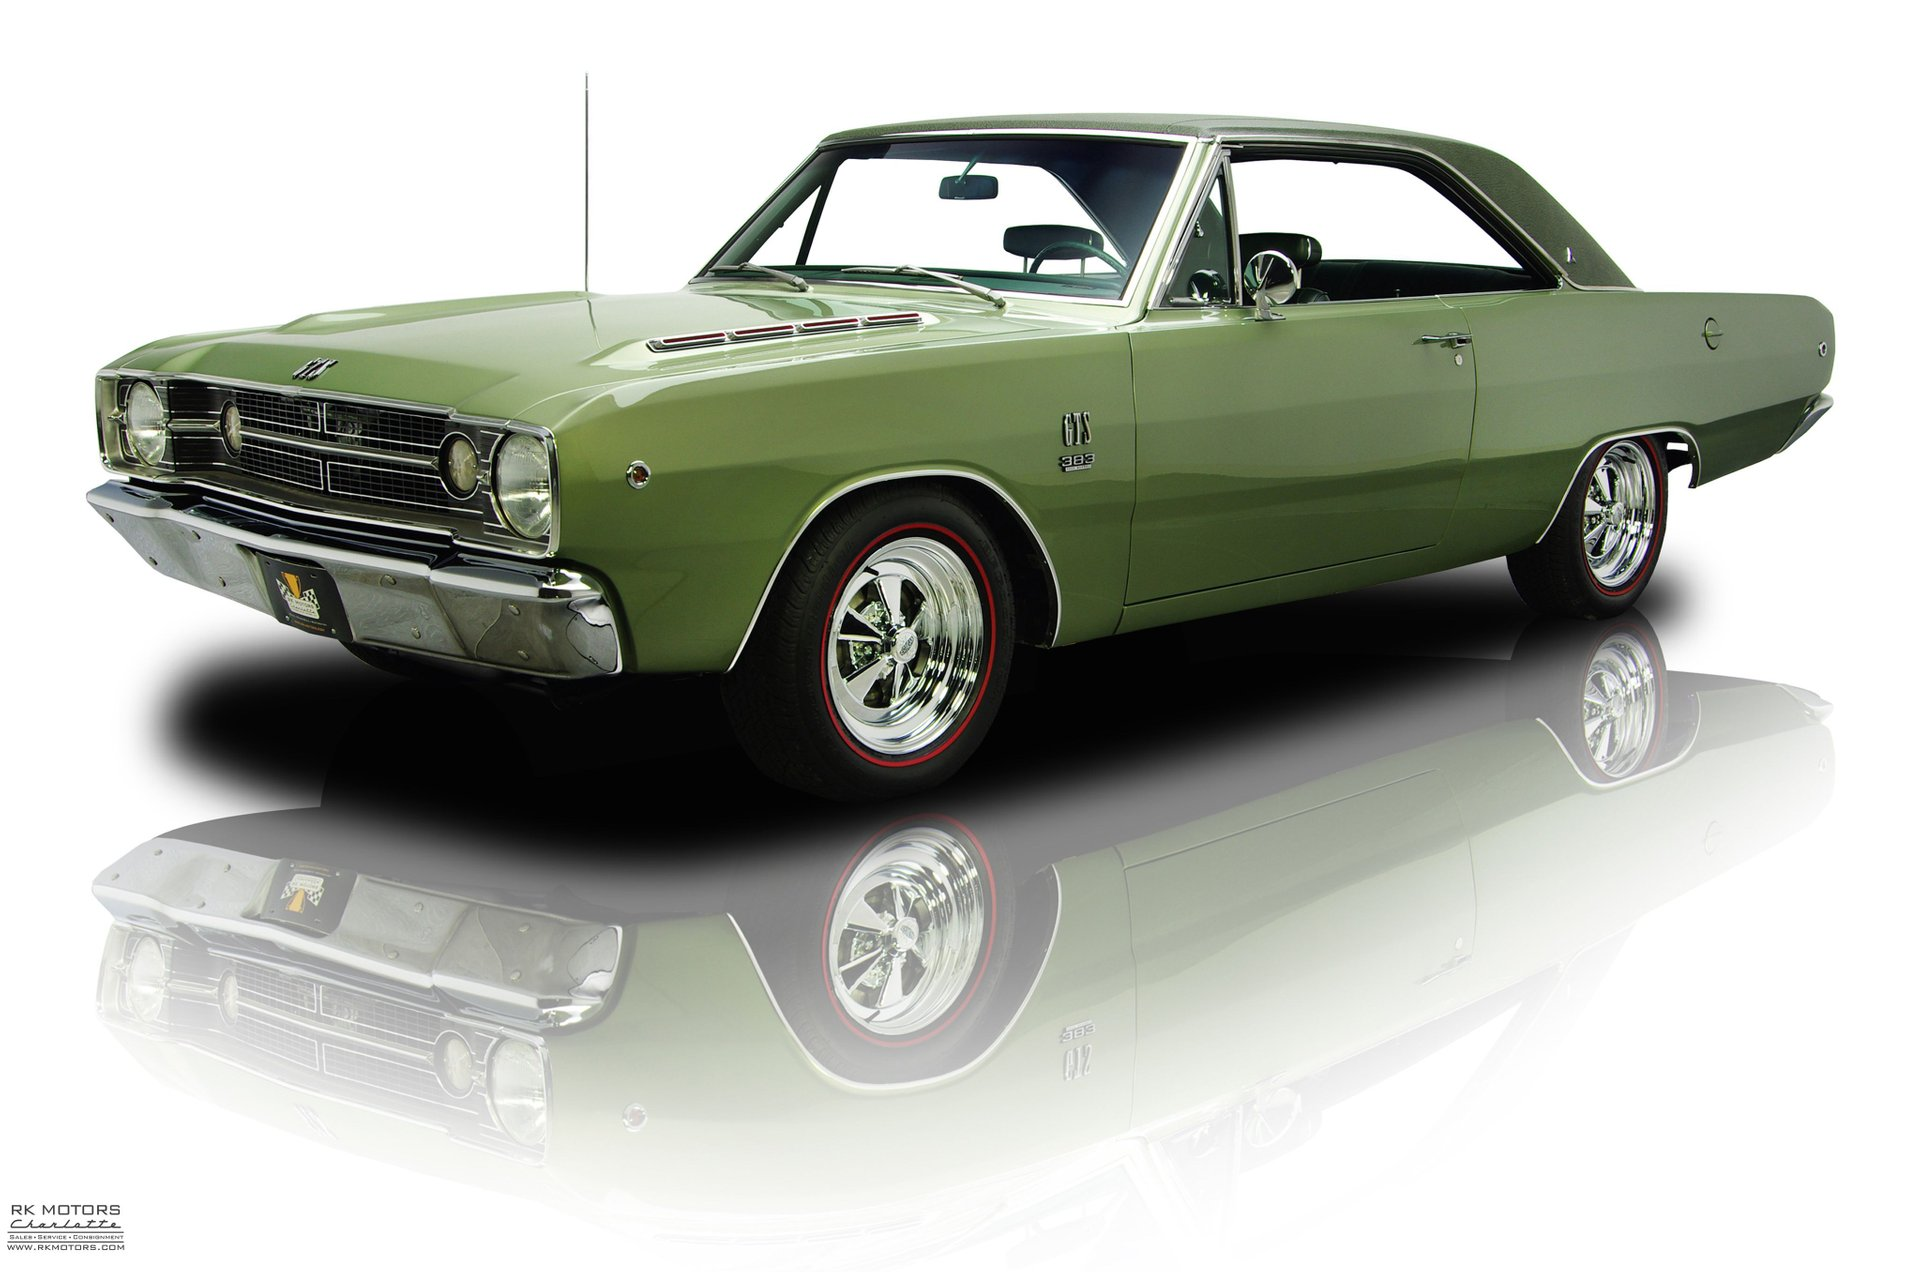 132645 1968 Dodge Dart Rk Motors Classic Cars And Muscle Cars For Sale